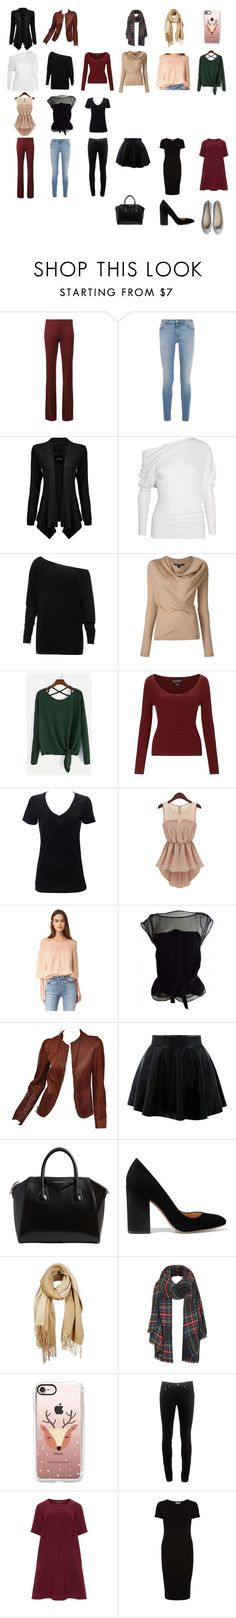 basic set by apollinariya-bogolyubova on Polyvore featuring мода, Manon Baptiste, Dorothy Perkins, Tom Ford, Theory, Louis Vuitton, Miss Selfridge, Givenchy, rag & bone and Gianvito Rossi